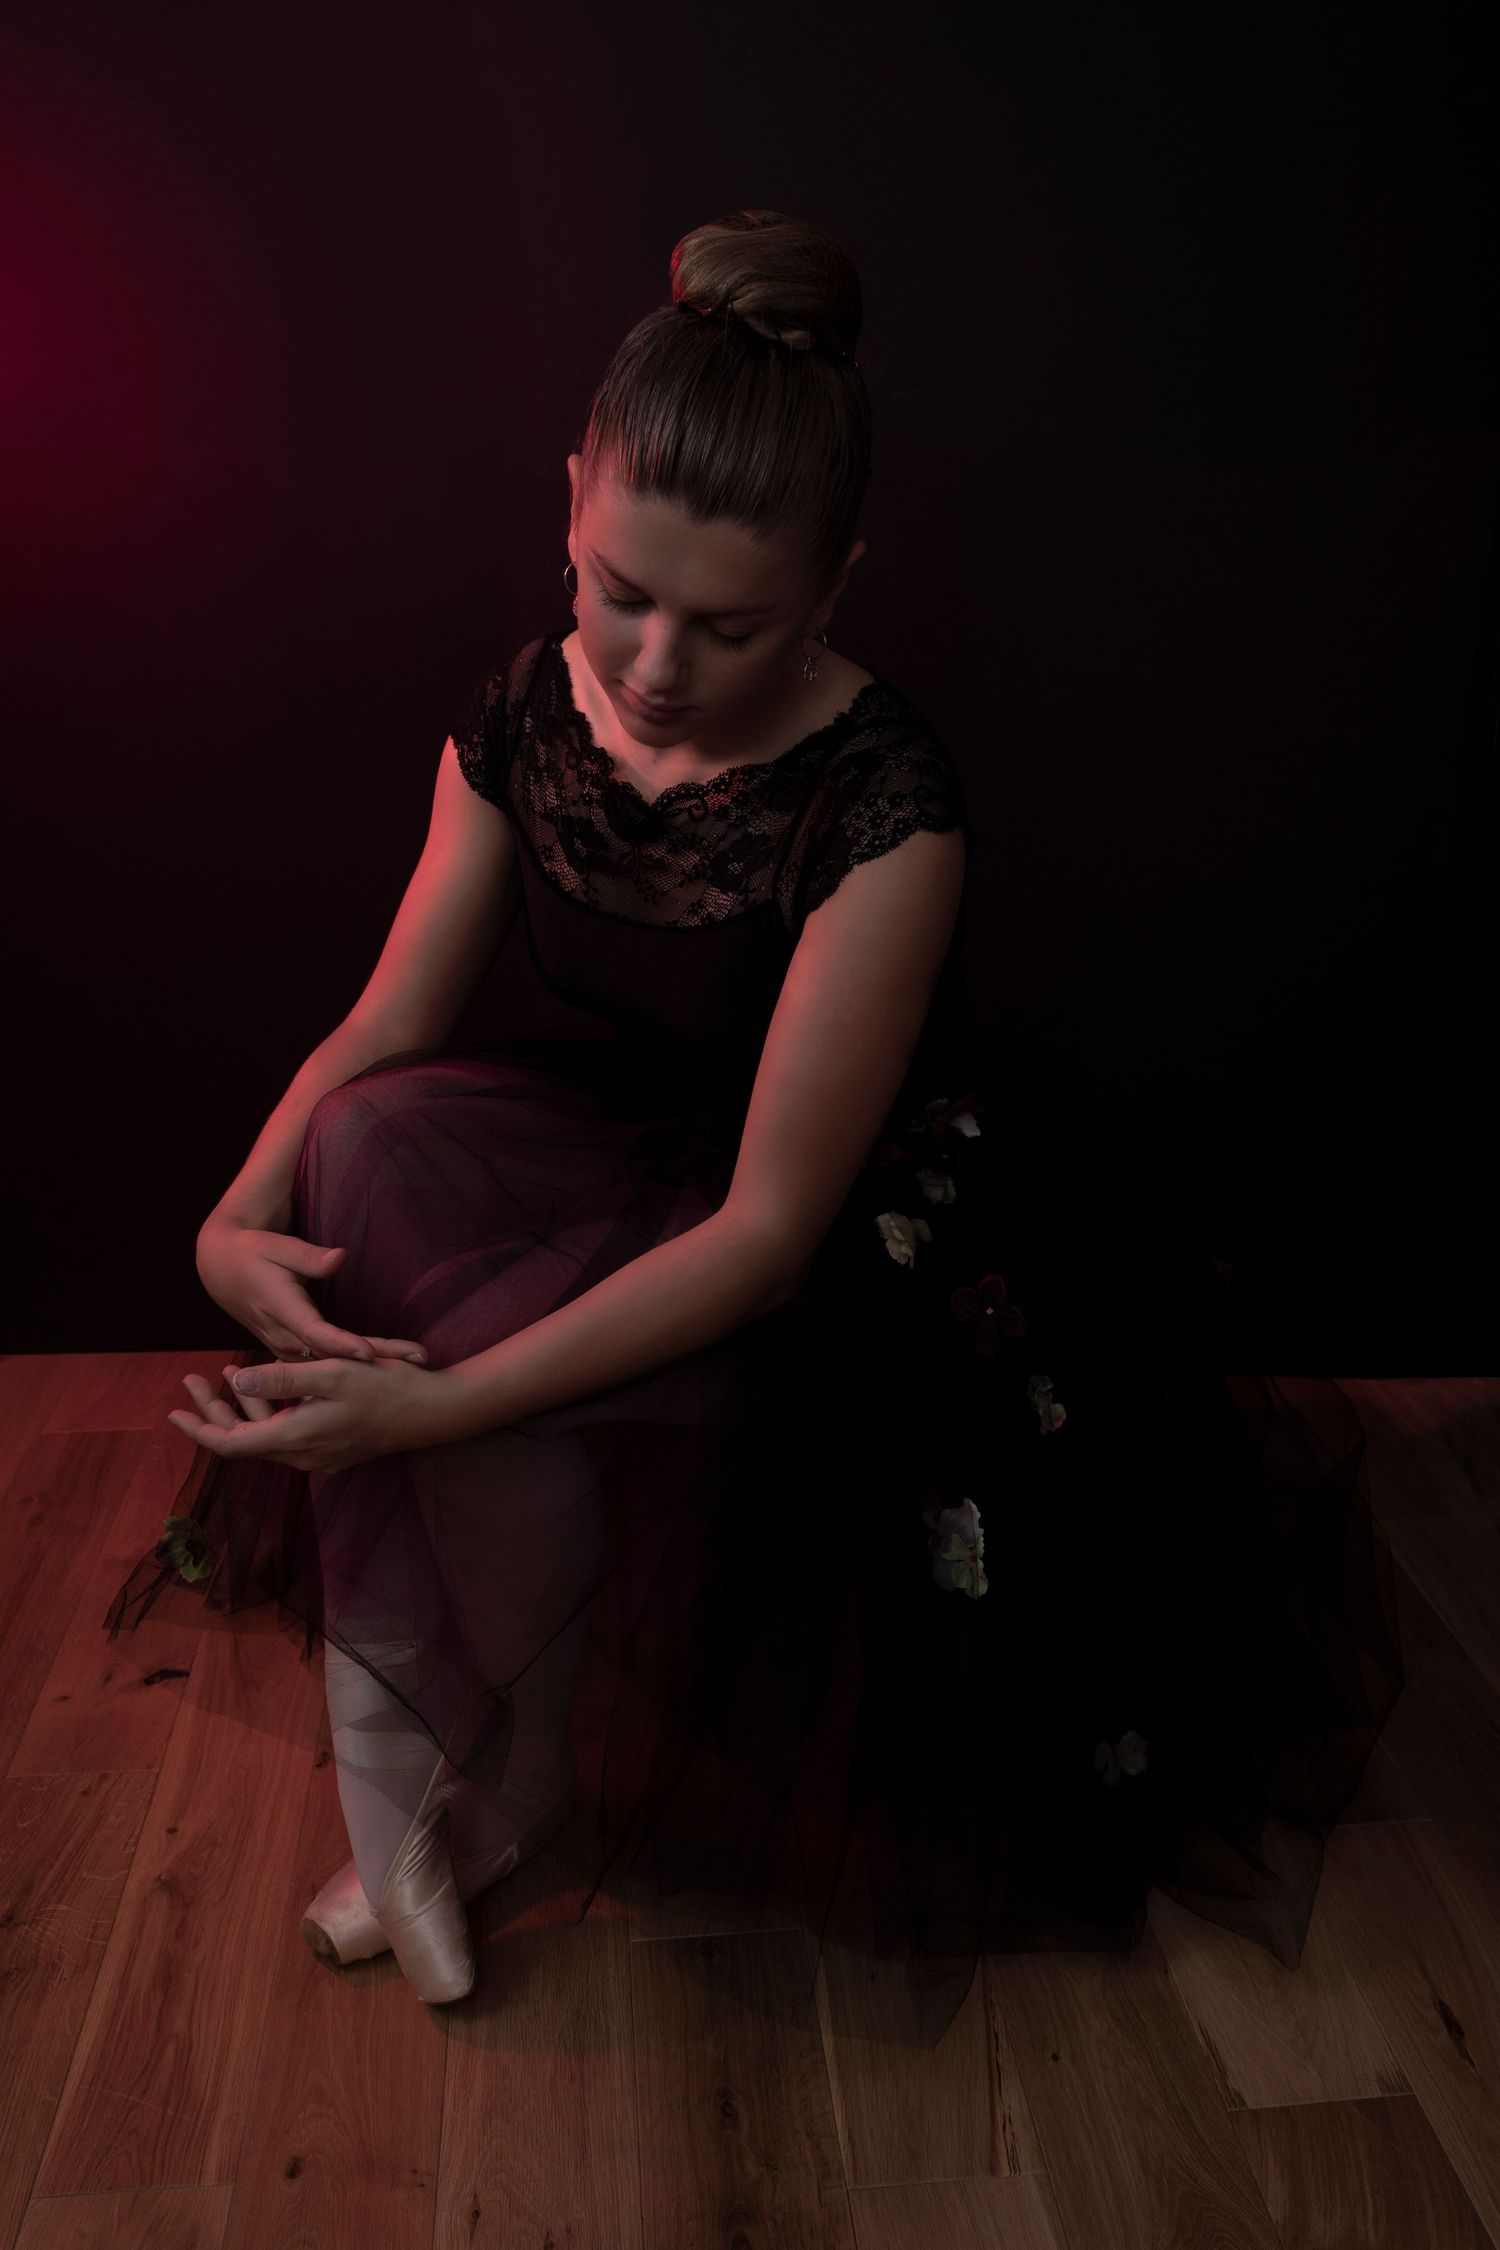 A ballerina sits on the floor wearing pointe shoes and a romantic tutu.